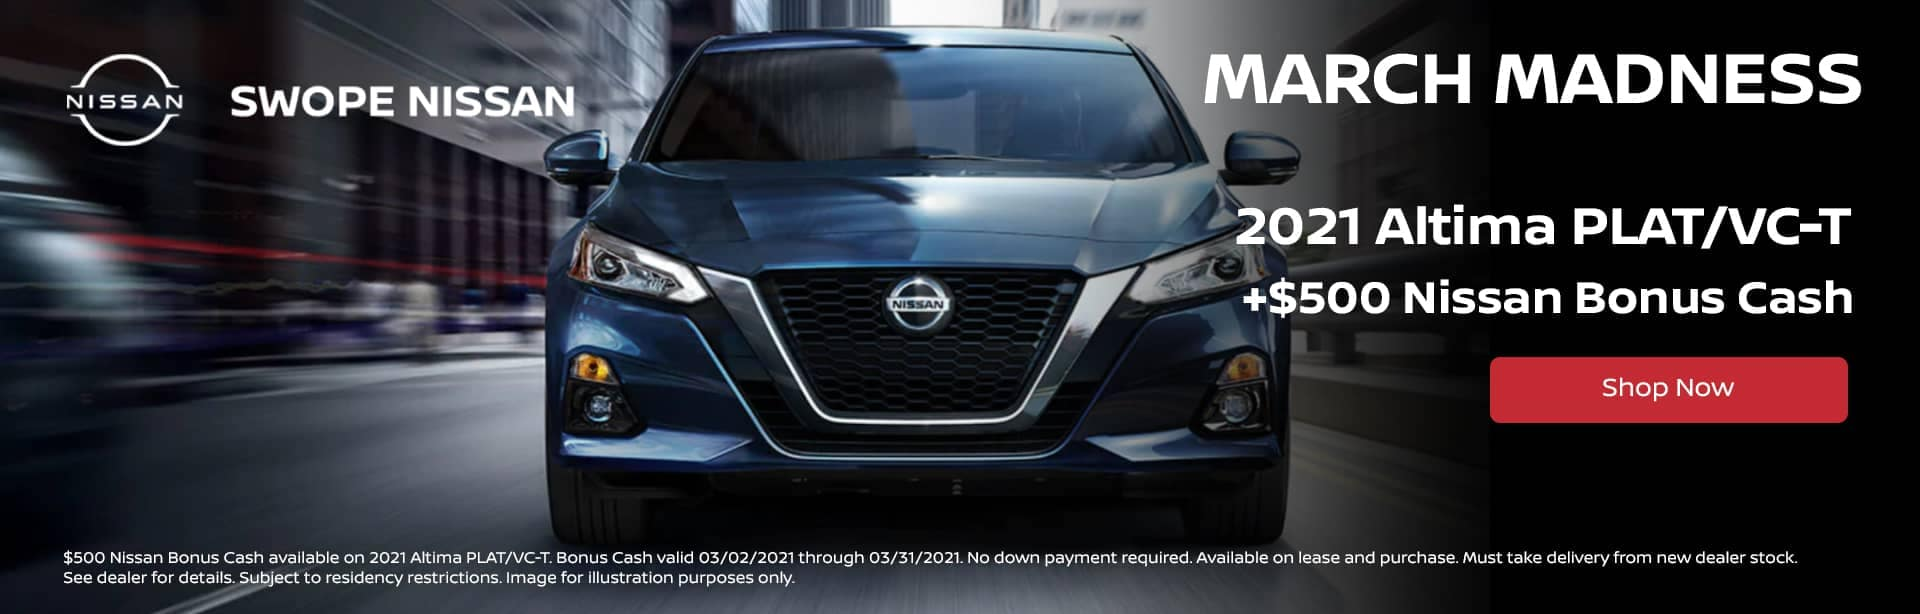 March Madness Deal - The 2021 Nissan Altima PLAT/VC-T